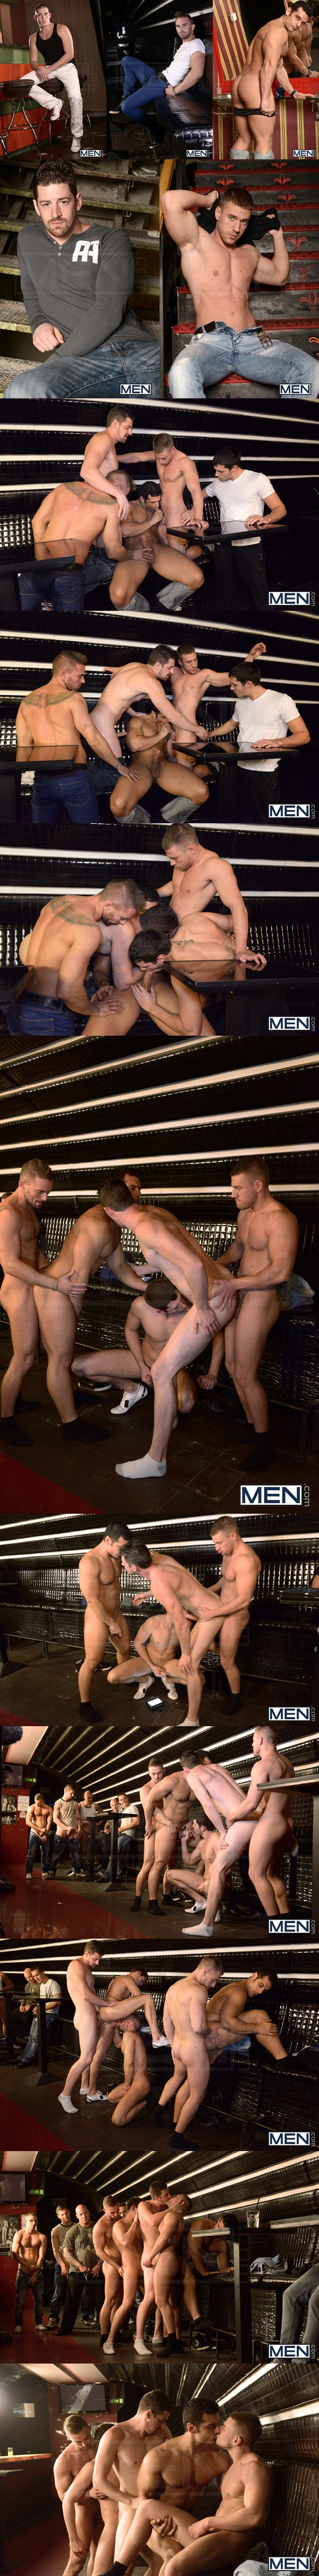 Marcus Ruhl, Andrew Stark, Jeffrey Branson, Kyler Braxton and Gabe Russel have gangbang orgy in Men in Budapest 8 at aJizzorgy 01